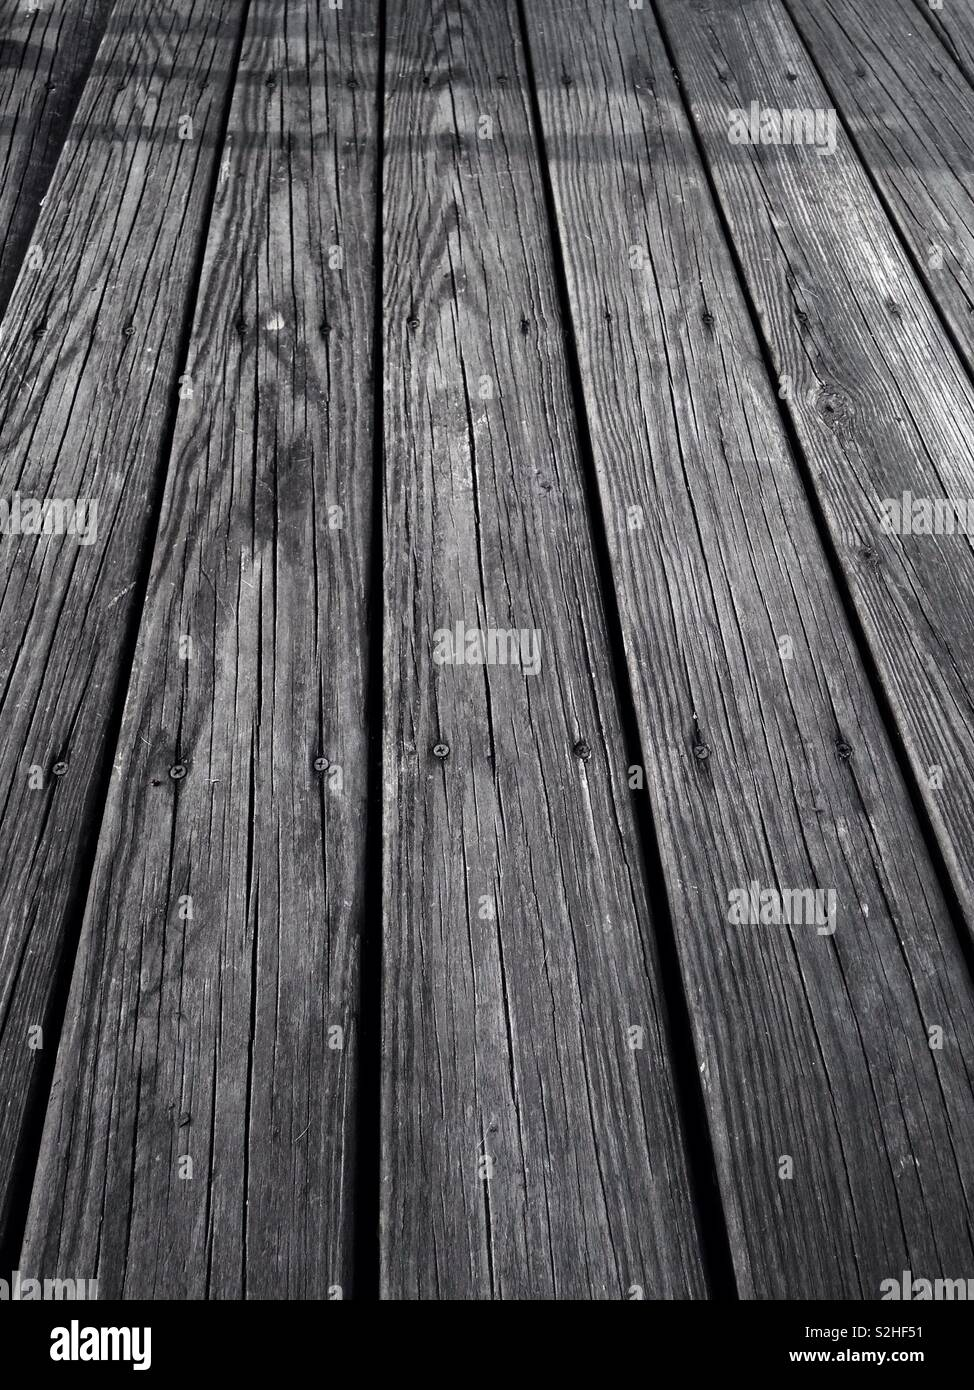 Wooden Deck Timbers - Stock Image